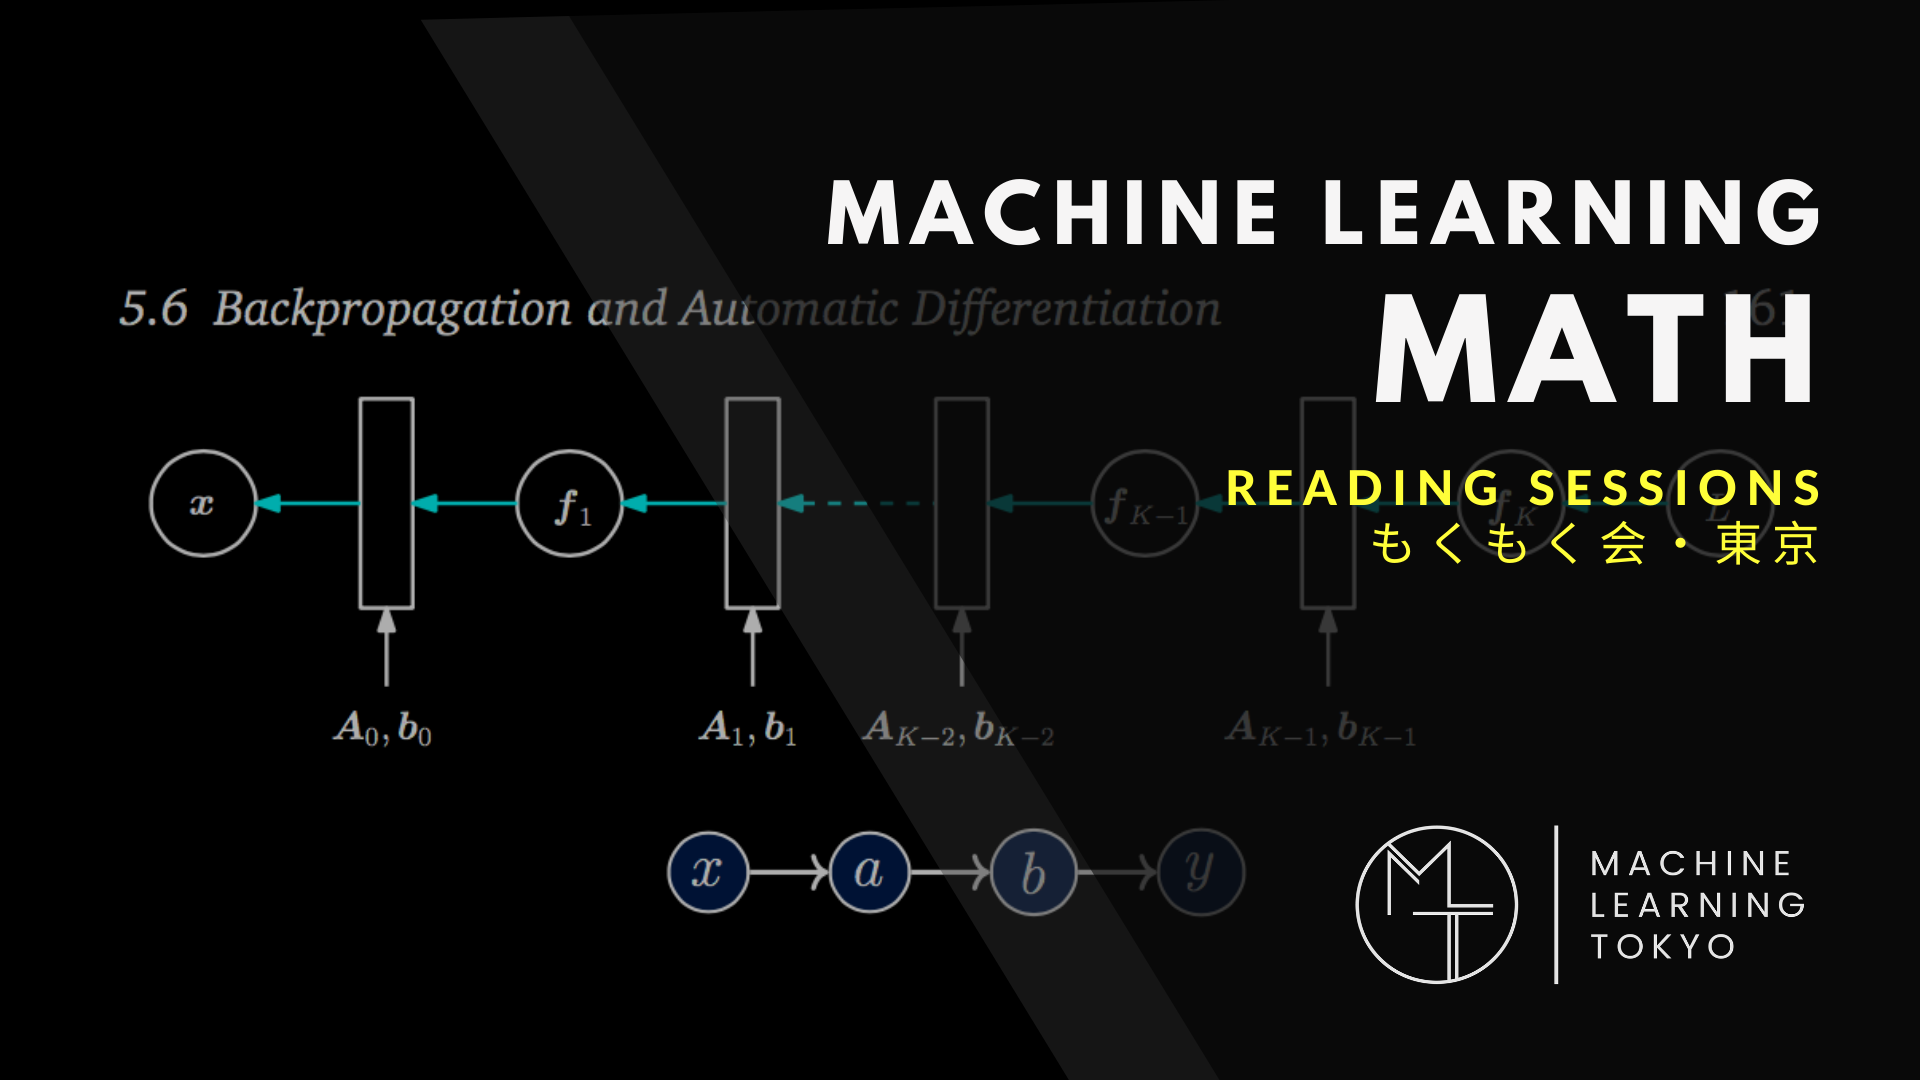 ML MATH READING SESSIONS – MLT | MACHINE LEARNING TOKYO